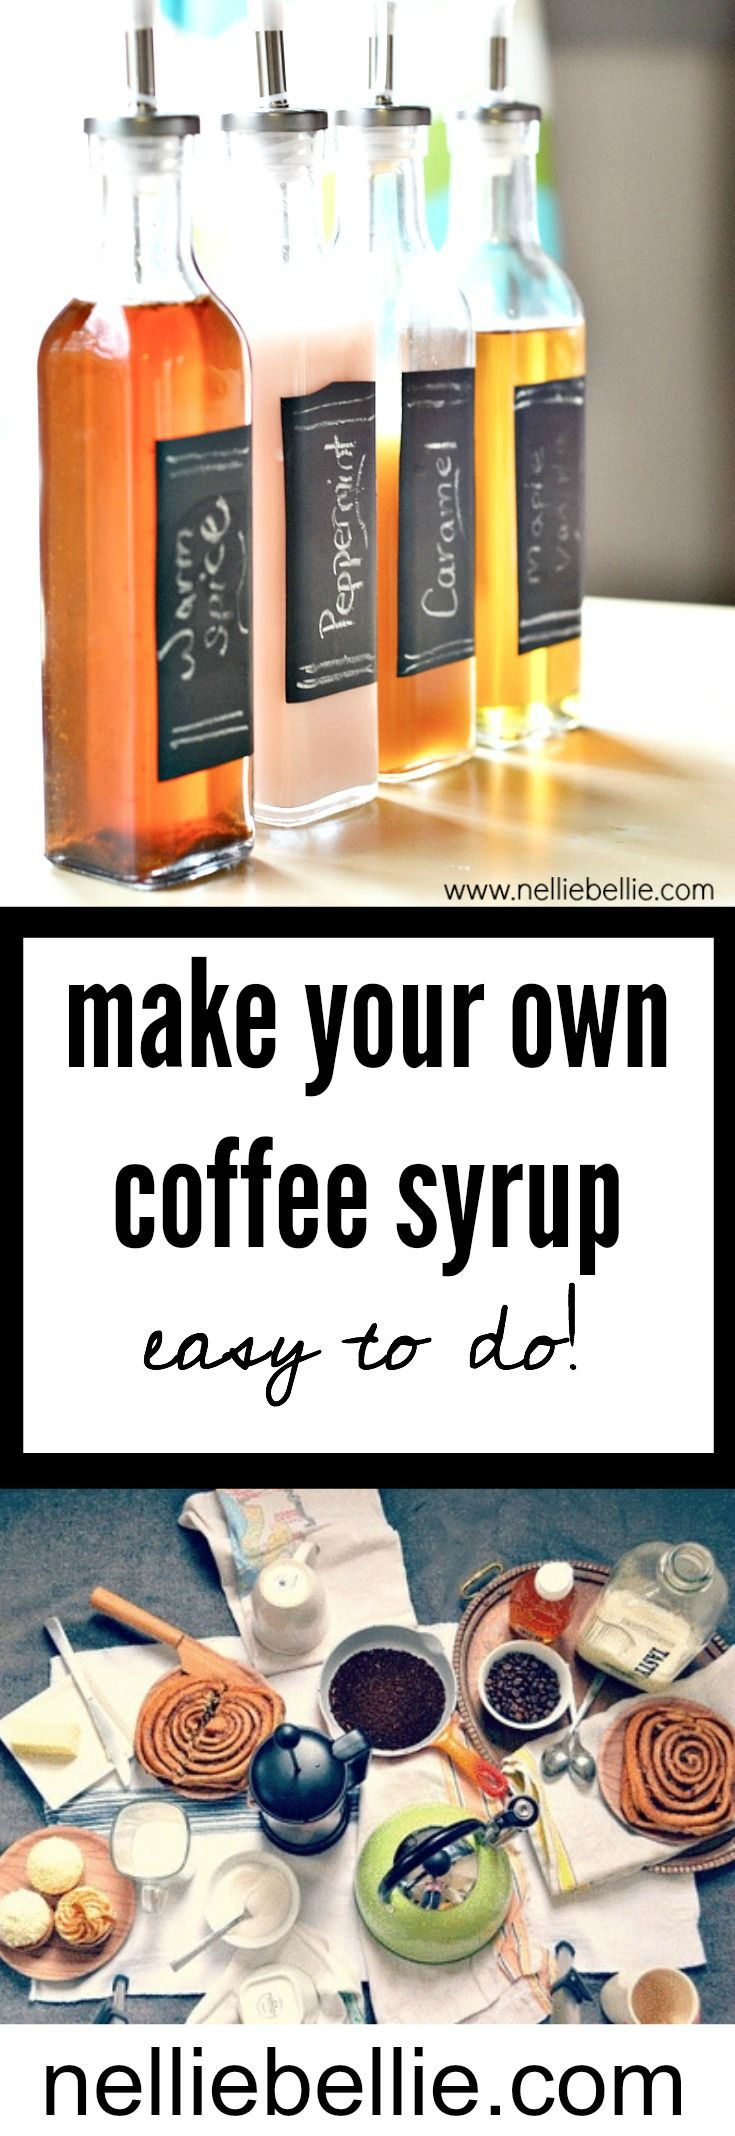 Make your own Coffee Syrup...easy to do!! And customize! This is a great idea to make as hostess gifts or gifts to give to your friends who come over for dinner. http://www.nelliebellie.com/homemade-coffee-syrup-recipes/#_a5y_p=2805342